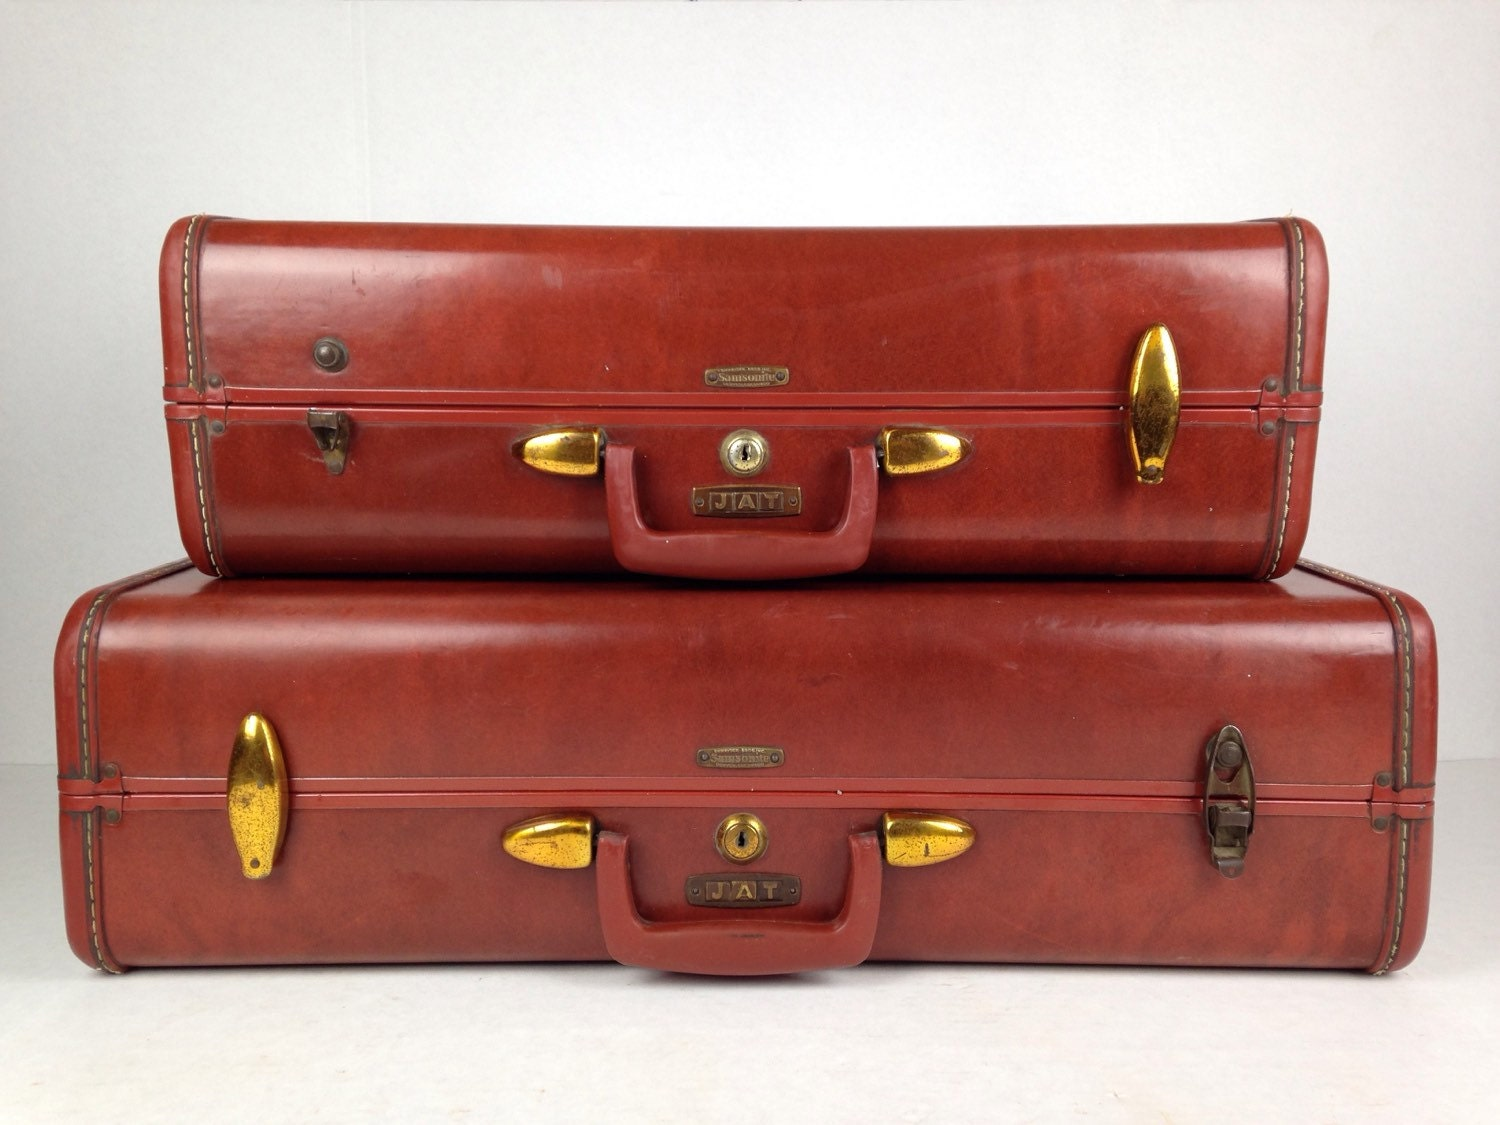 Vintage suitcase stack samsonite suitcase luggage vintage - Vintage suitcase ...